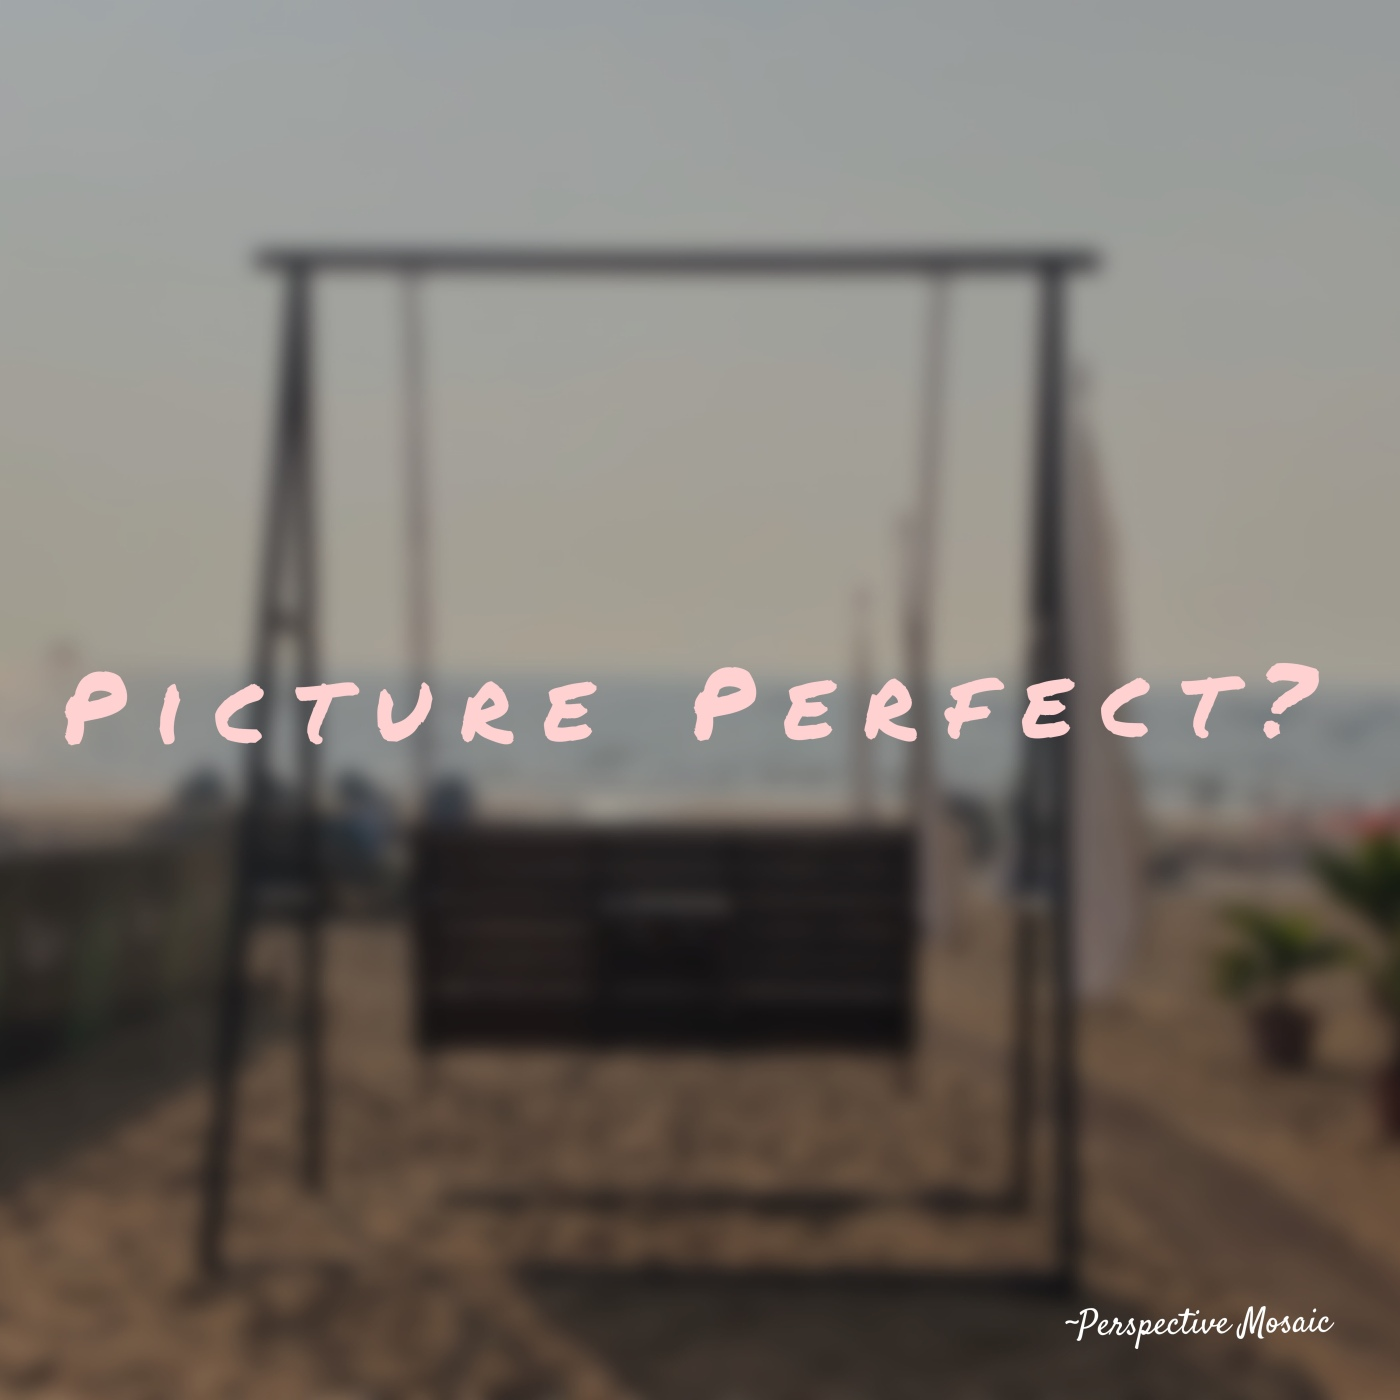 Picture perfect Perspective mosaic beach swing sunset